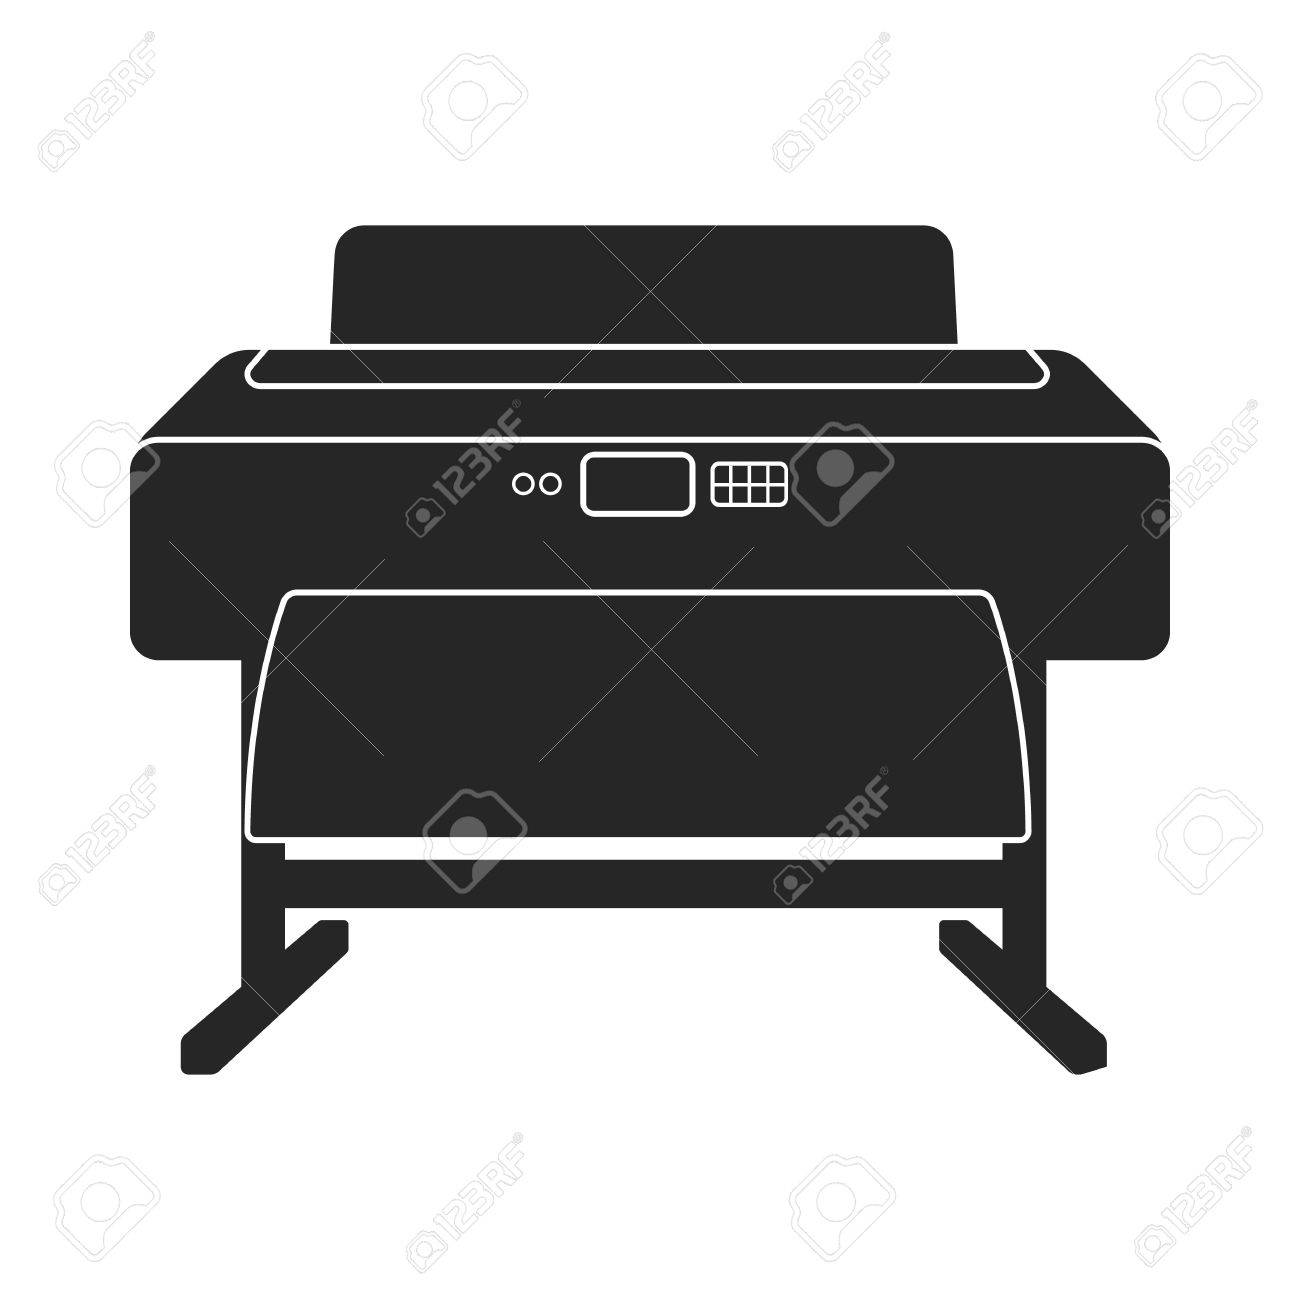 large format printer icon in black style isolated on white background royalty free cliparts vectors and stock illustration image 64250602 large format printer icon in black style isolated on white background